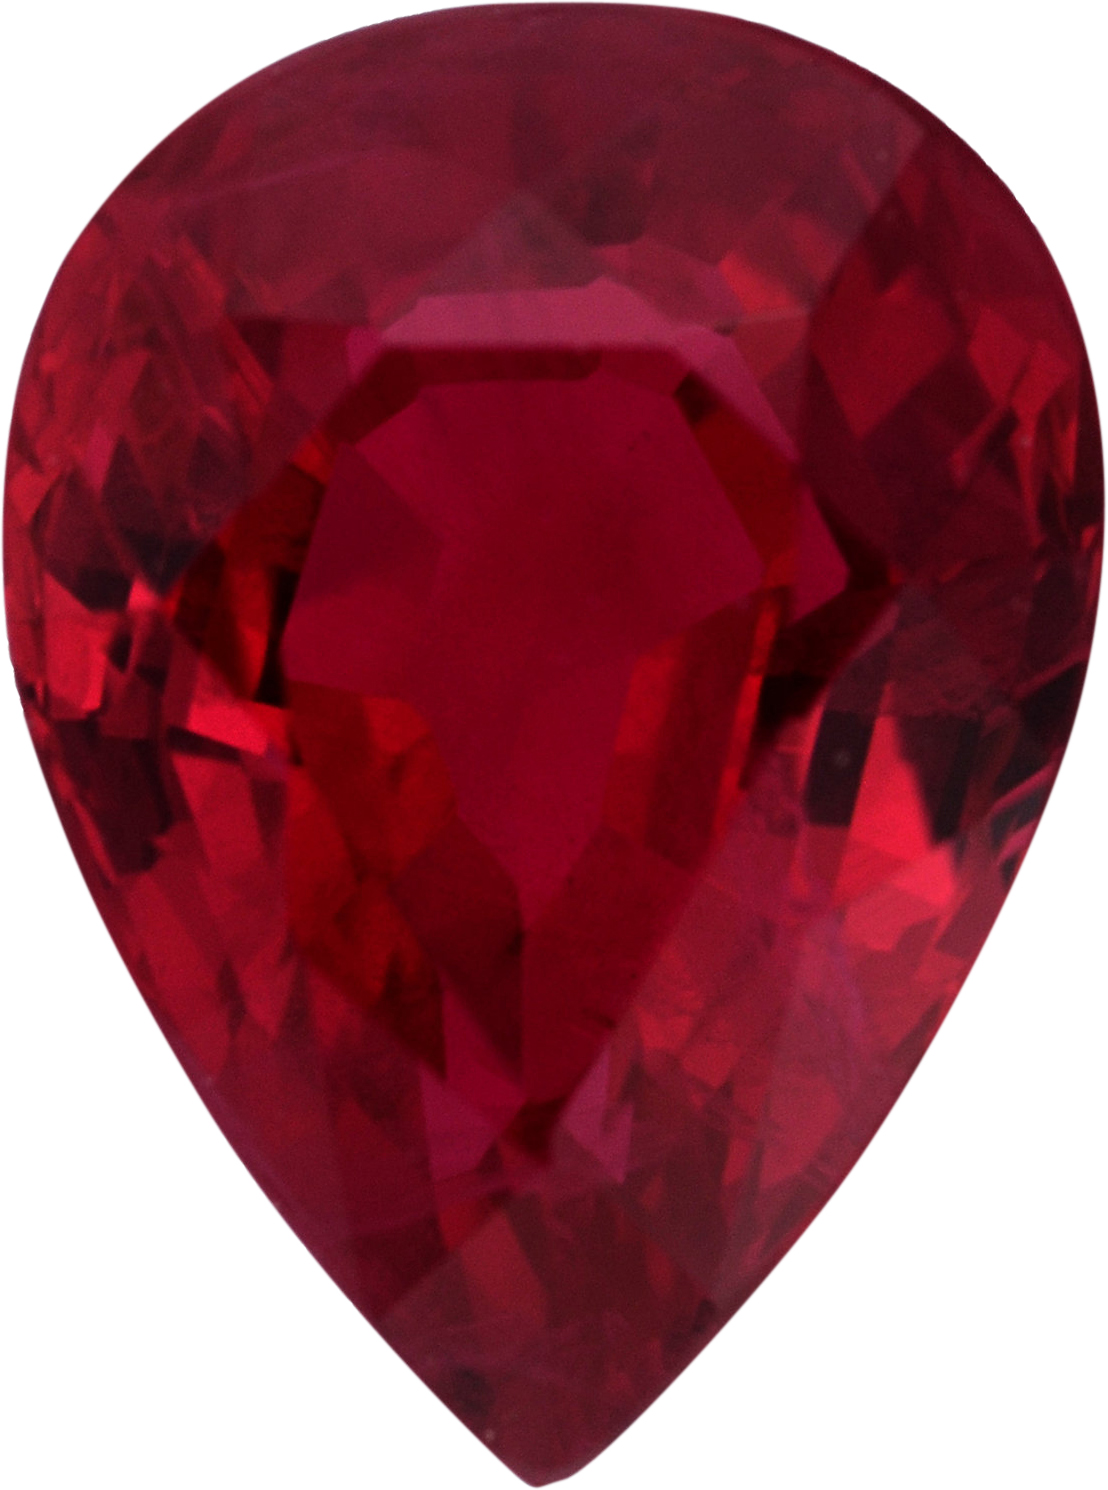 Stunning Pear Shape Loose Ruby Gem,  Red Color, 8.08 x 6 mm, 1.62 carats